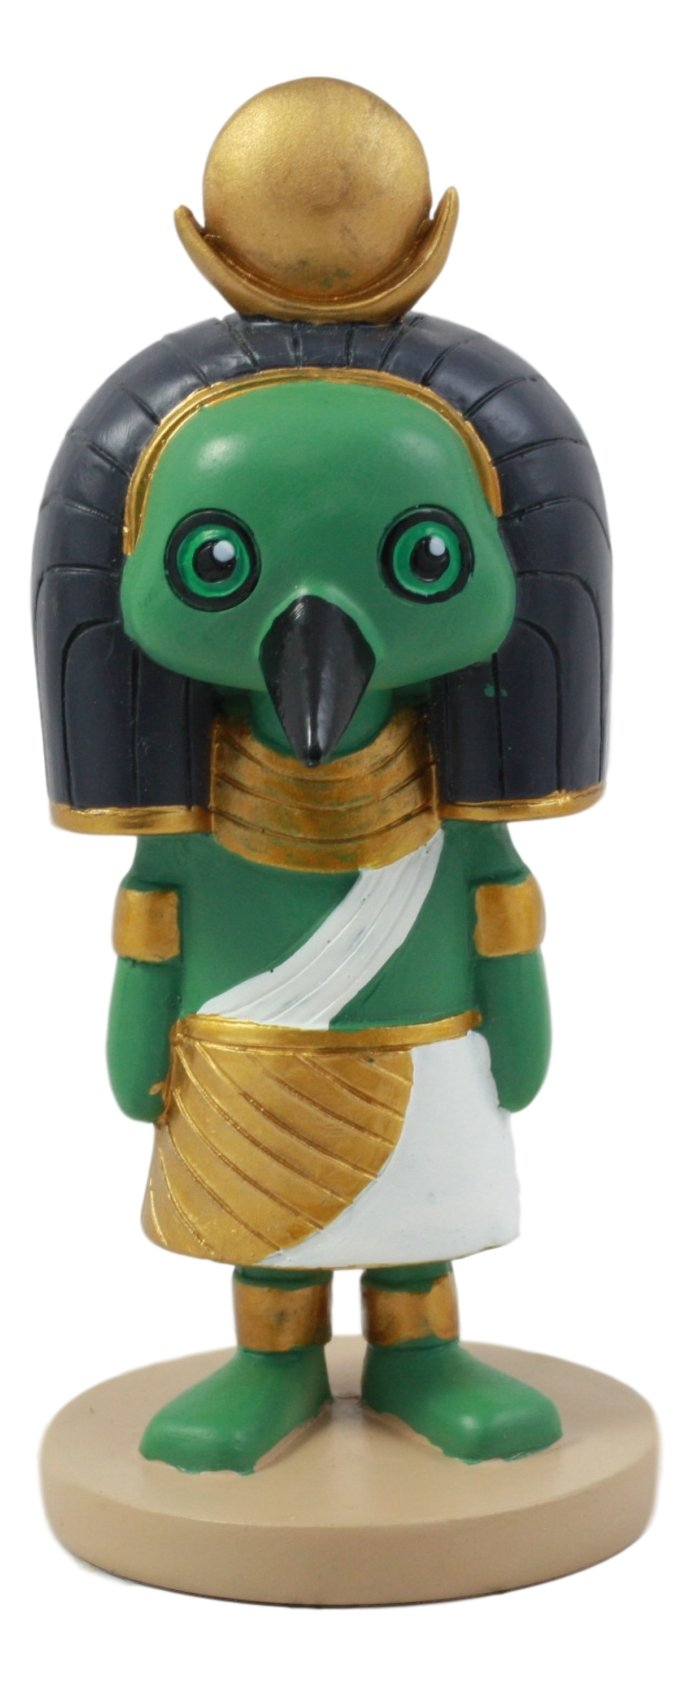 Ebros Egyptian God Of Technology And Wisdom Ibis Thoth Figurine 4''H Dollhouse Collectible